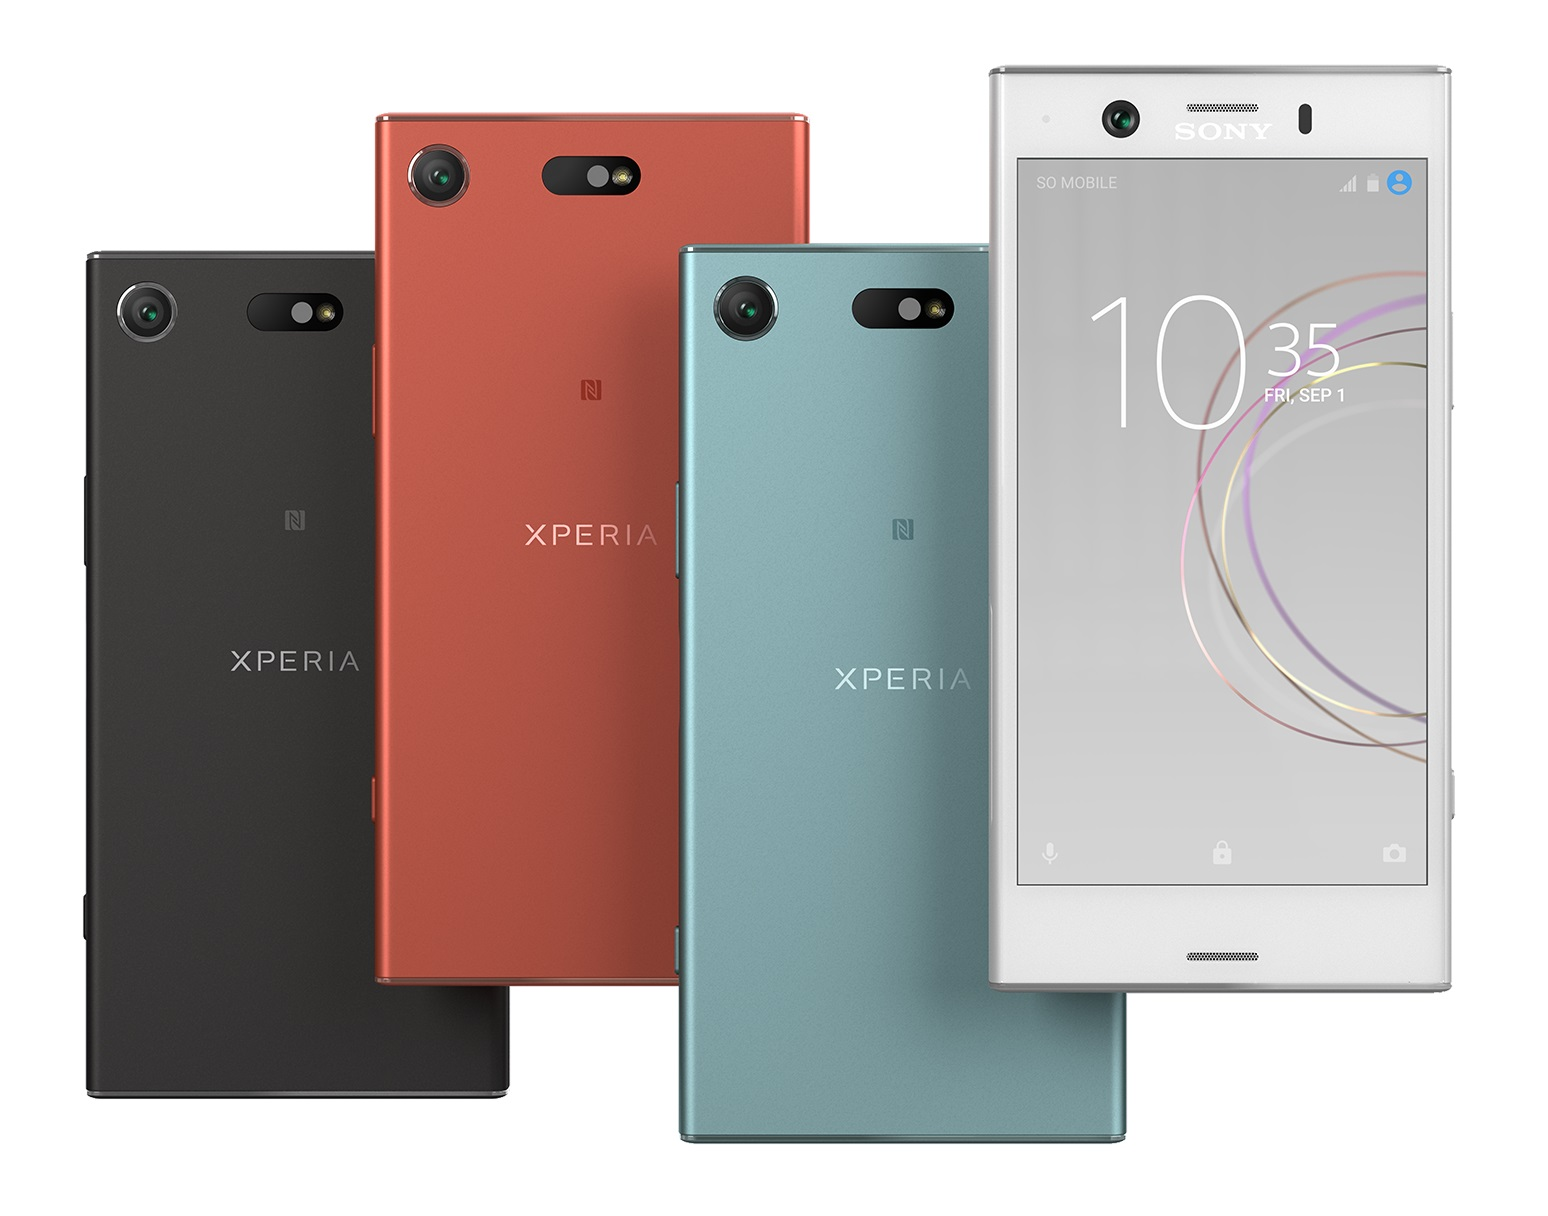 sony xperia xz1 compact im hands on video kraftprotz im mini format mit 3d kamera alle infos. Black Bedroom Furniture Sets. Home Design Ideas